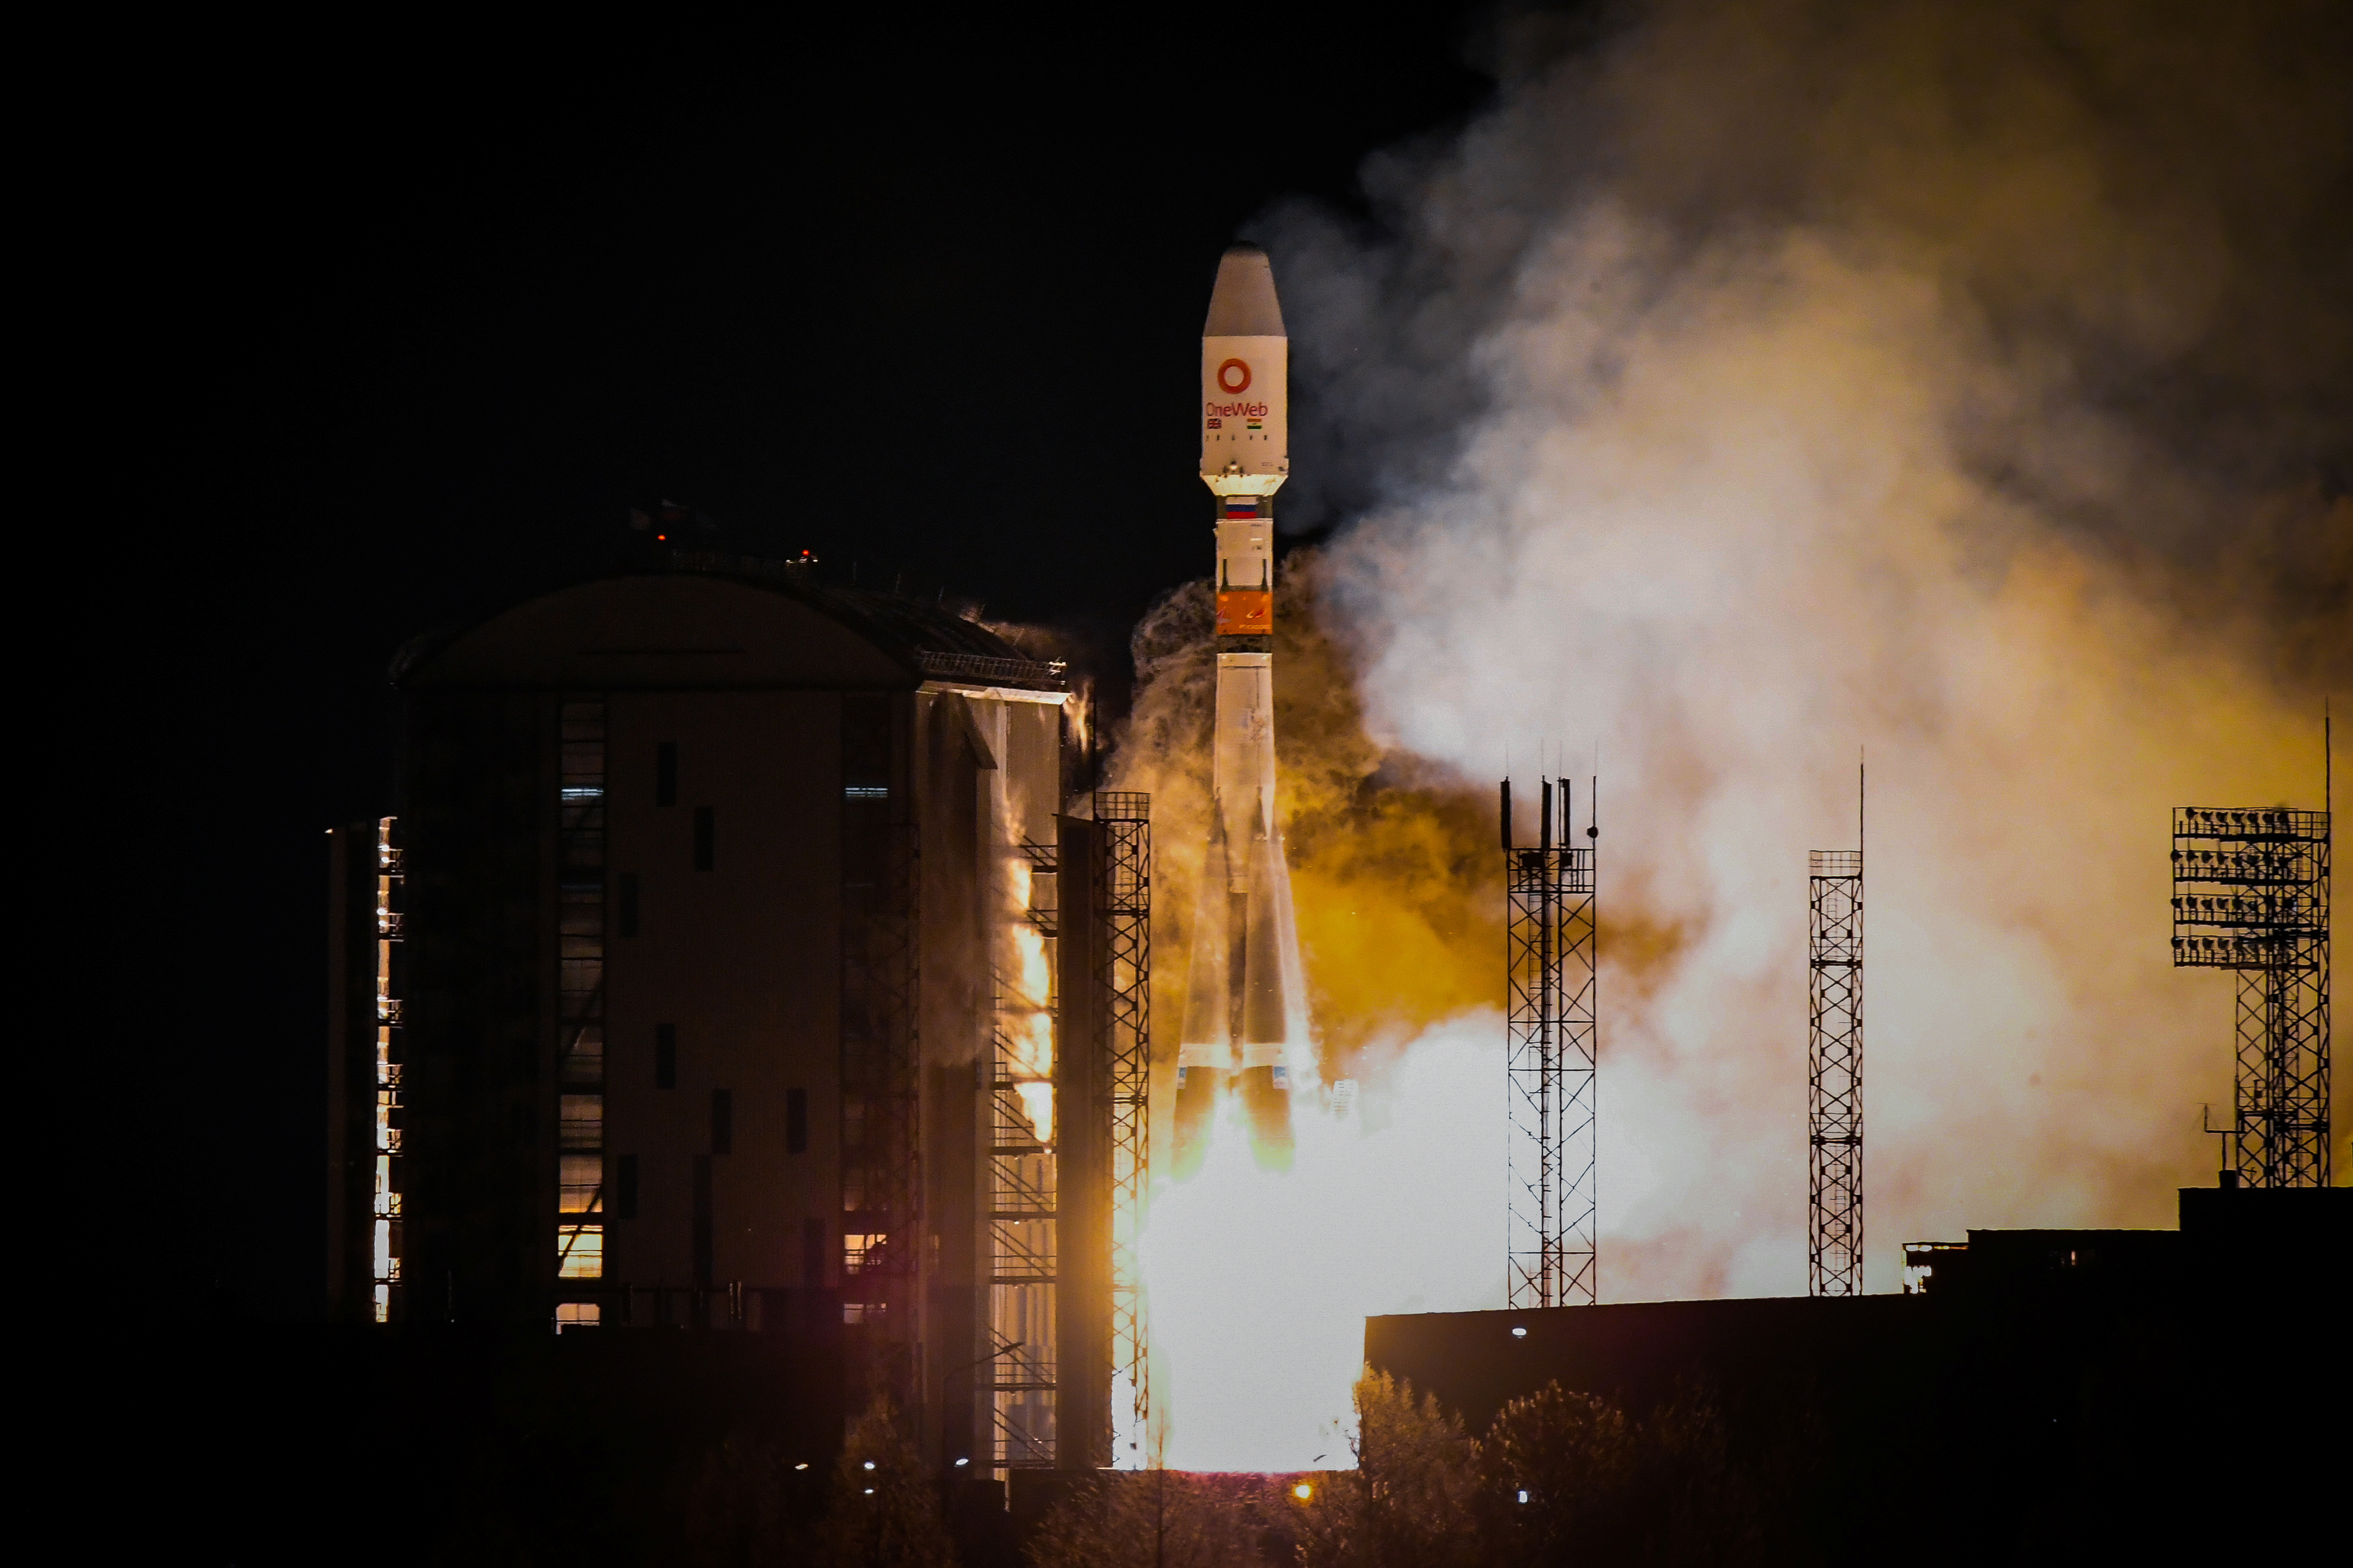 A Soyuz-2.1b rocket booster carrying the satellites of British firm OneWeb blasts off from a launch pad at the Vostochny Cosmodrome in Amur Region, Russia December 18, 2020. Russian space agency Roscosmos/Handout via REUTERS